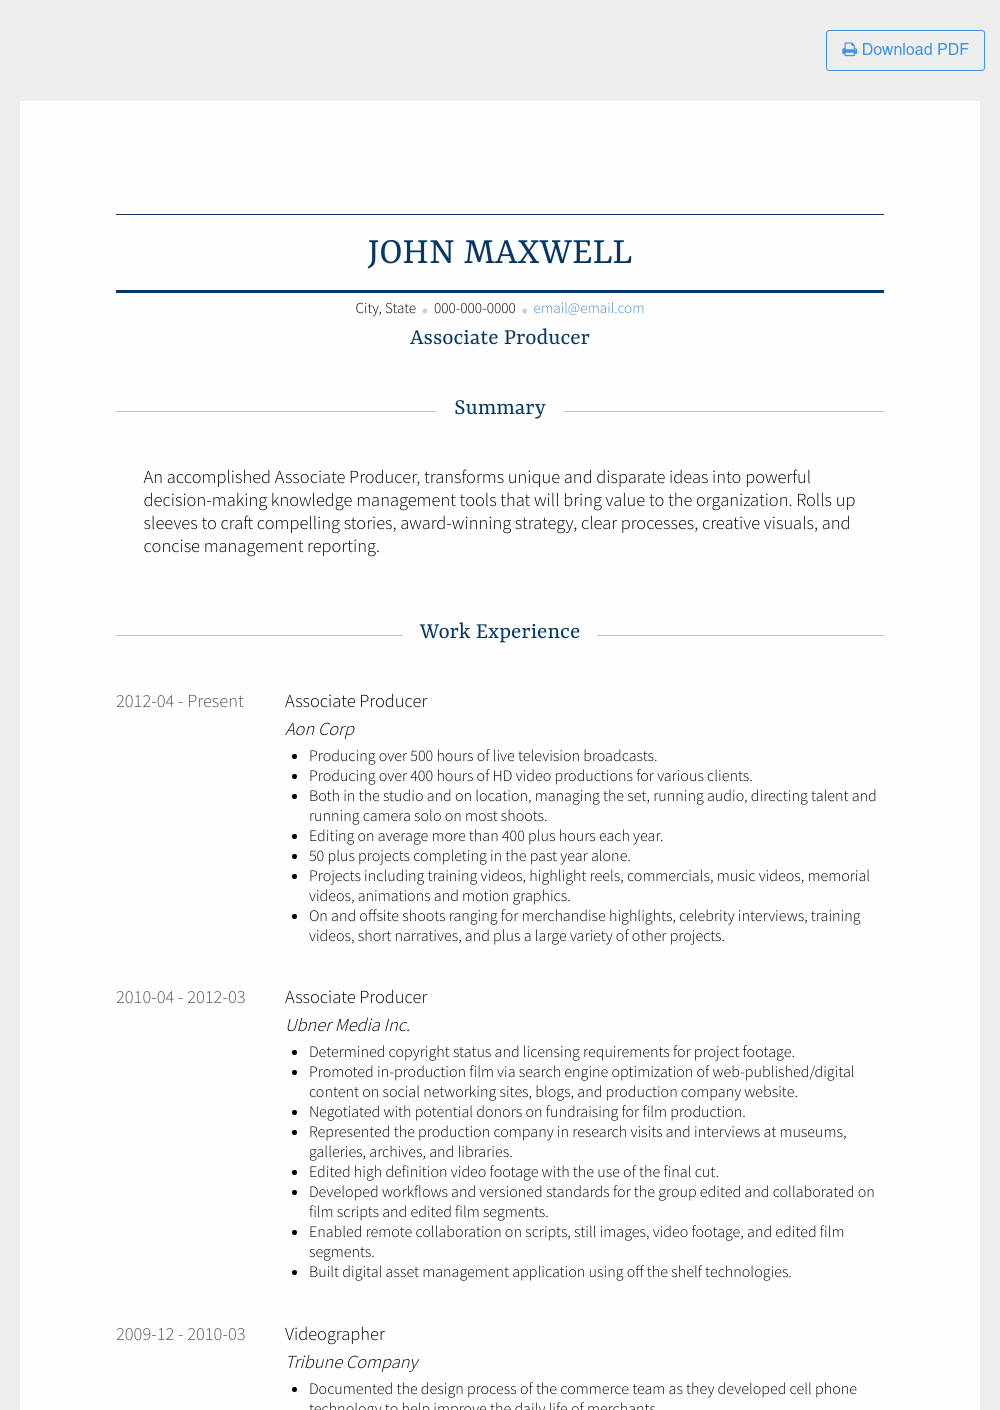 Associate Producer Resume Sample and Template